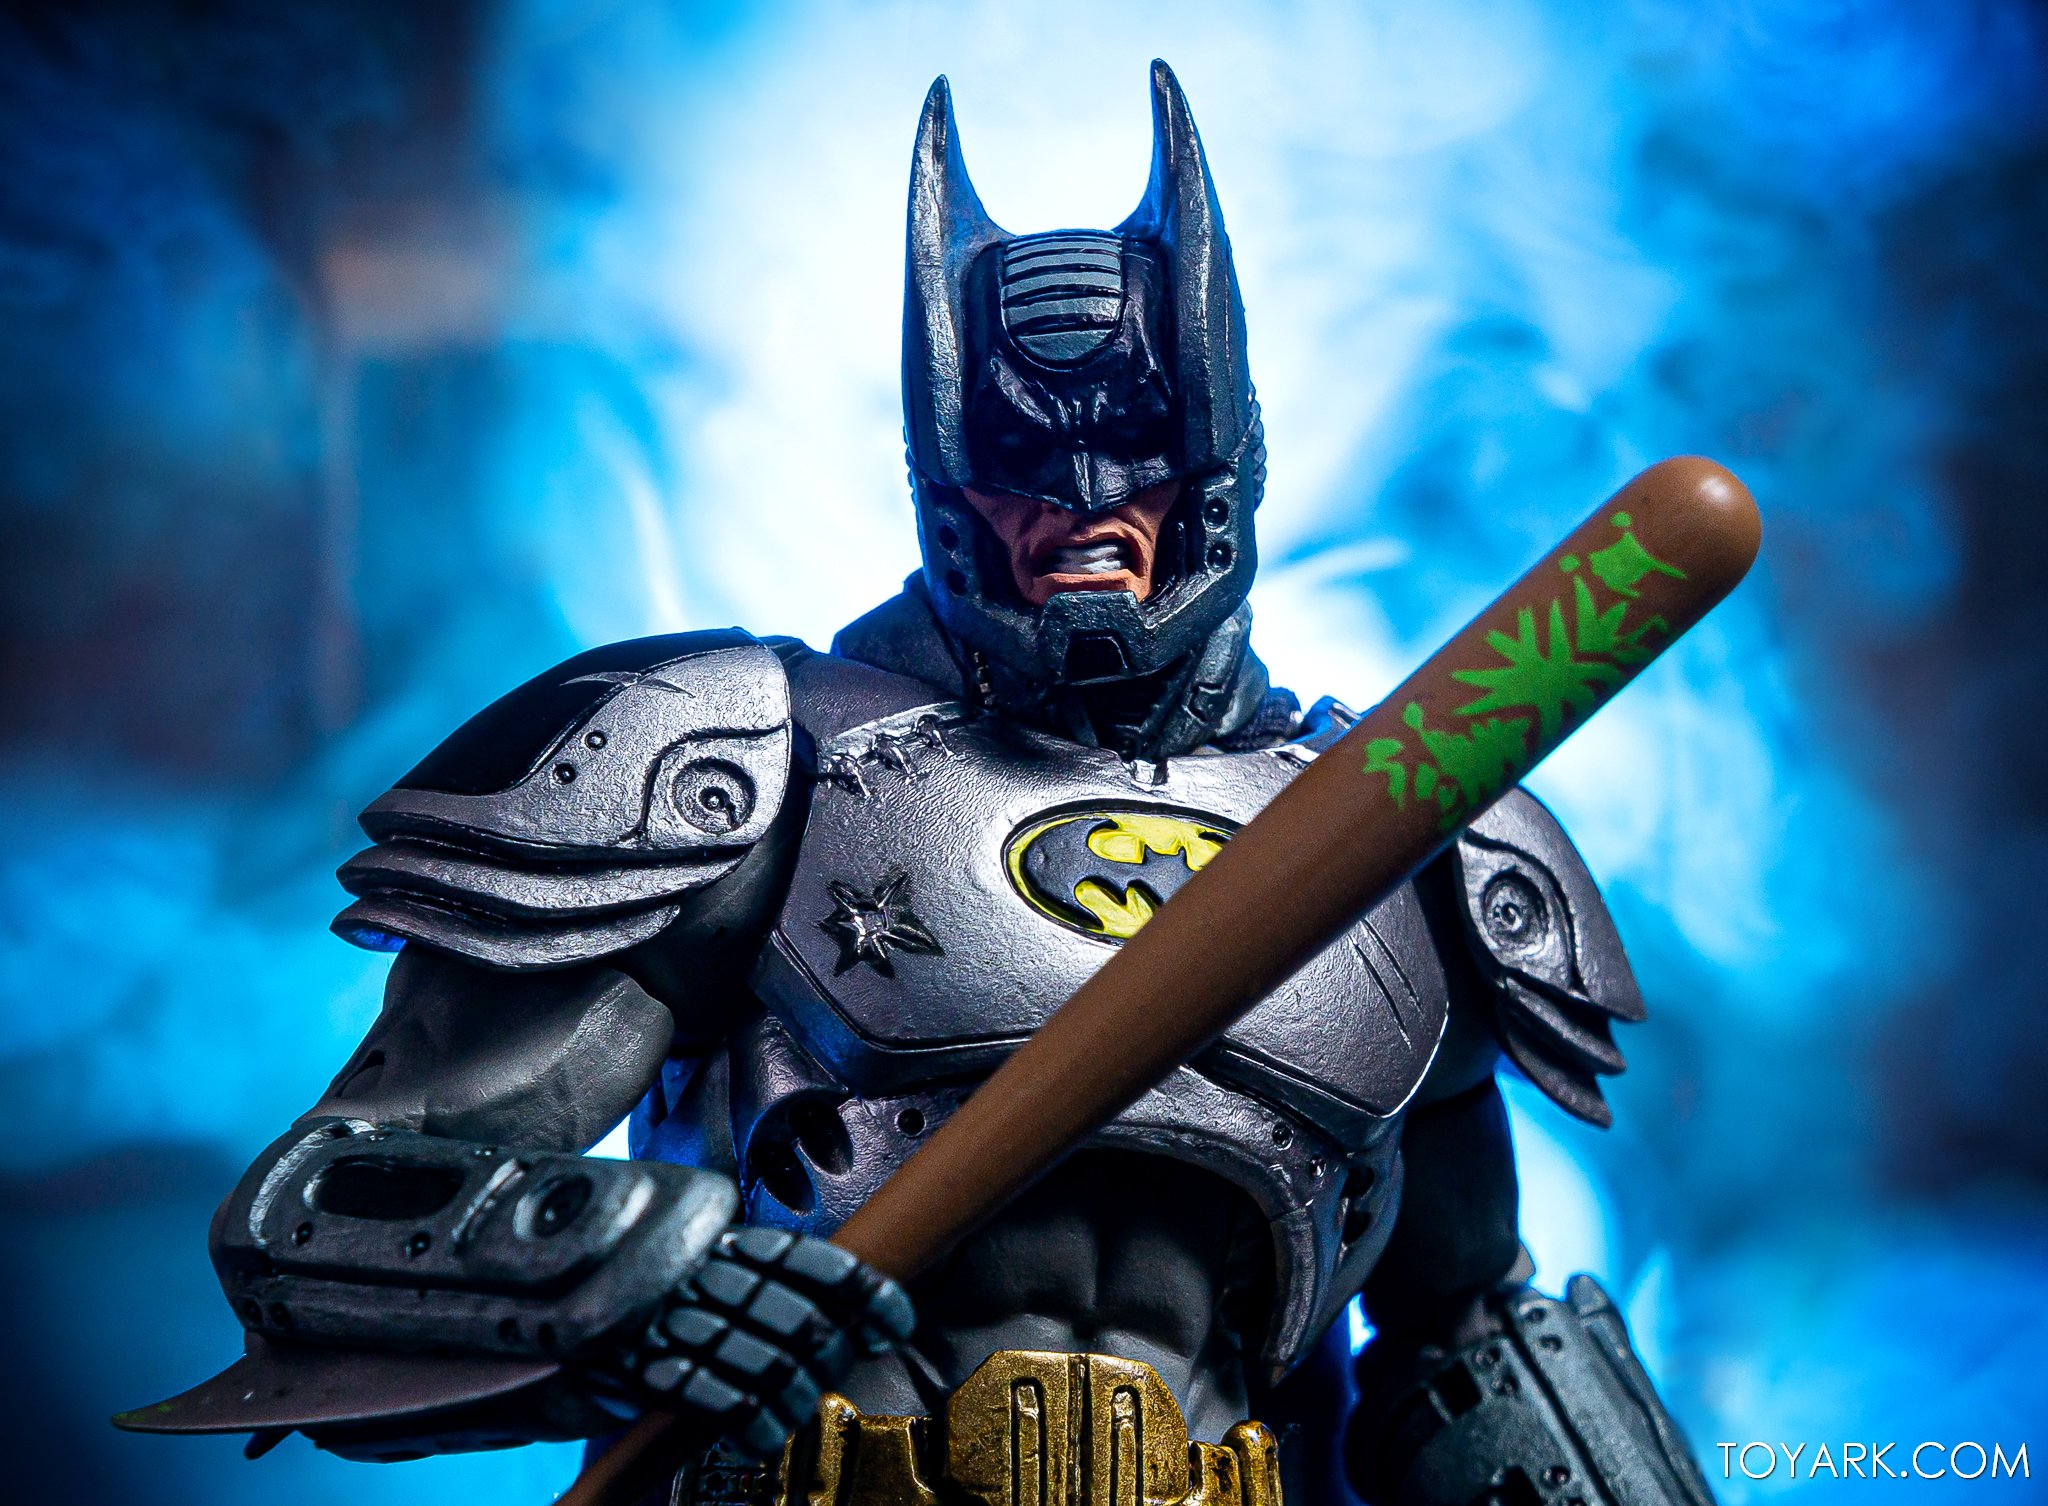 https://news.toyark.com/wp-content/uploads/sites/4/2019/09/Batman-vs-Predator-Set-016.jpg